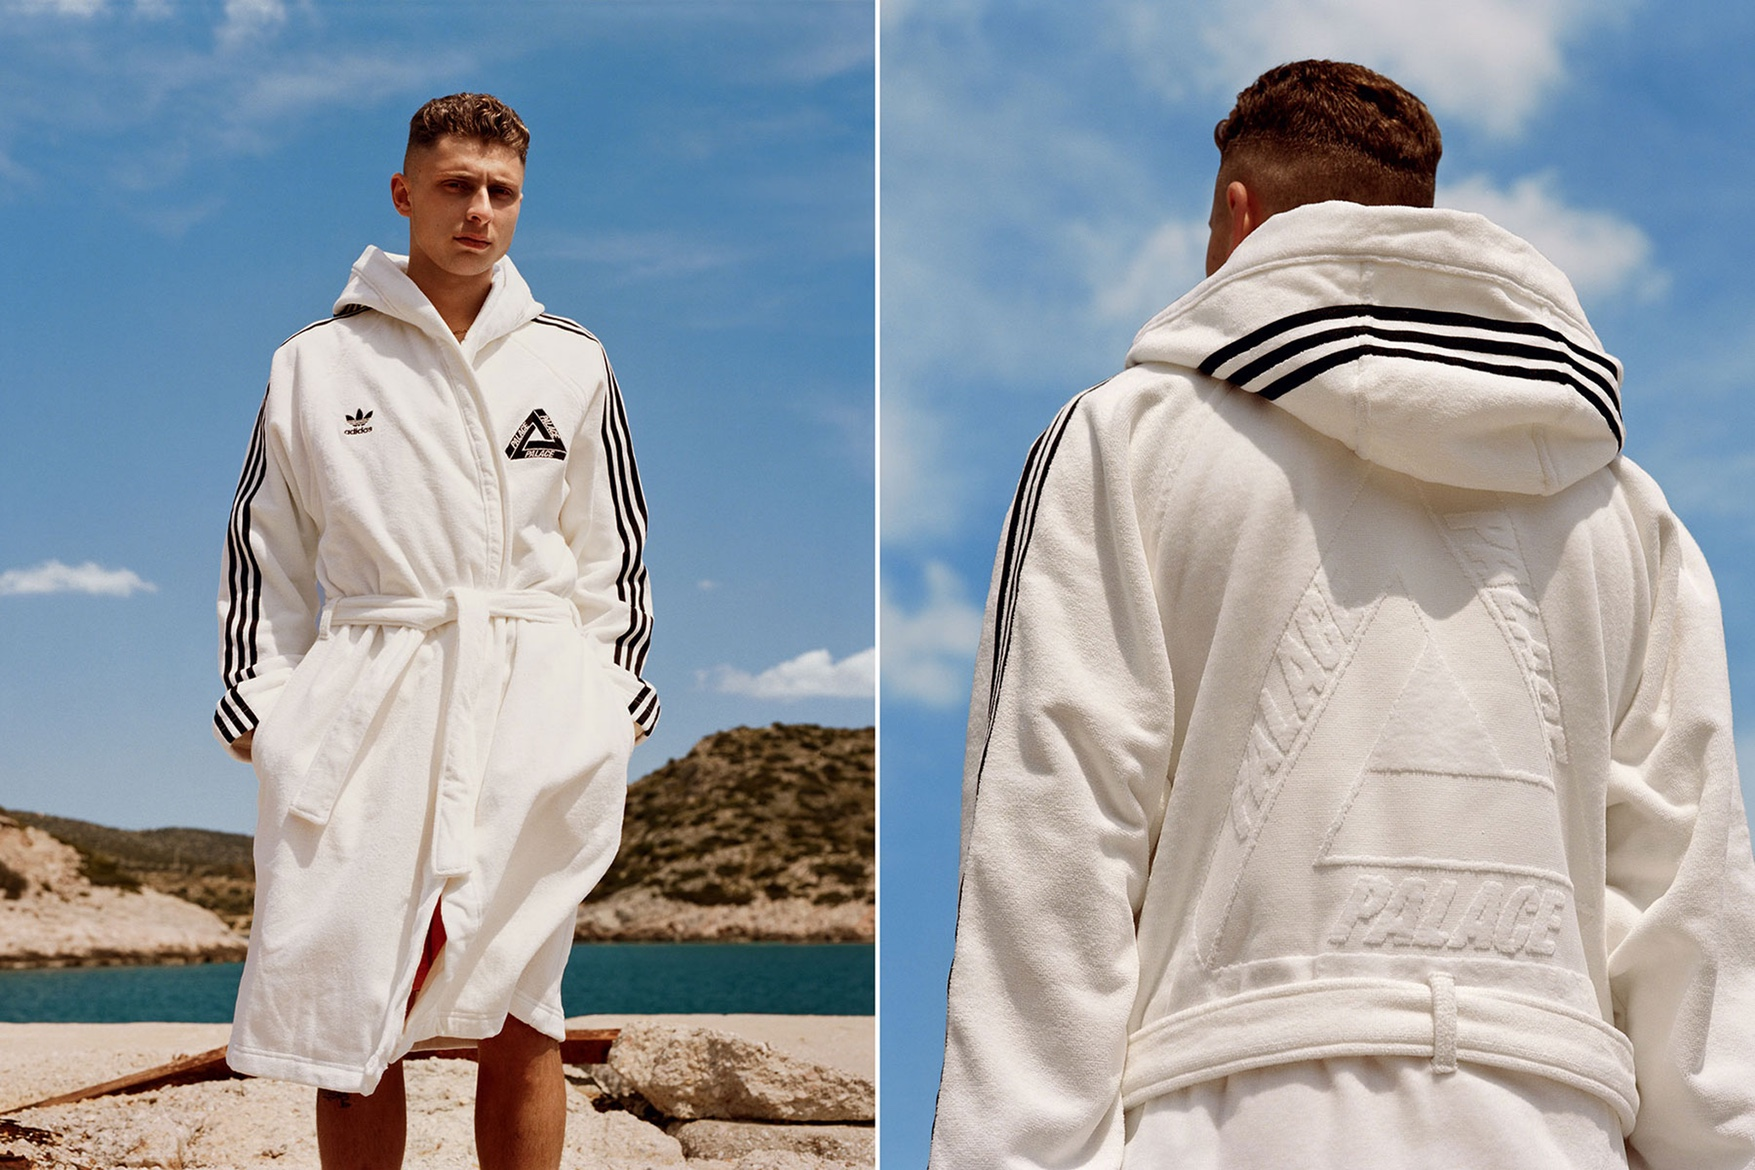 http-hypebeast.comimage201706palace-adidas-originals-2017-summer-collection-5